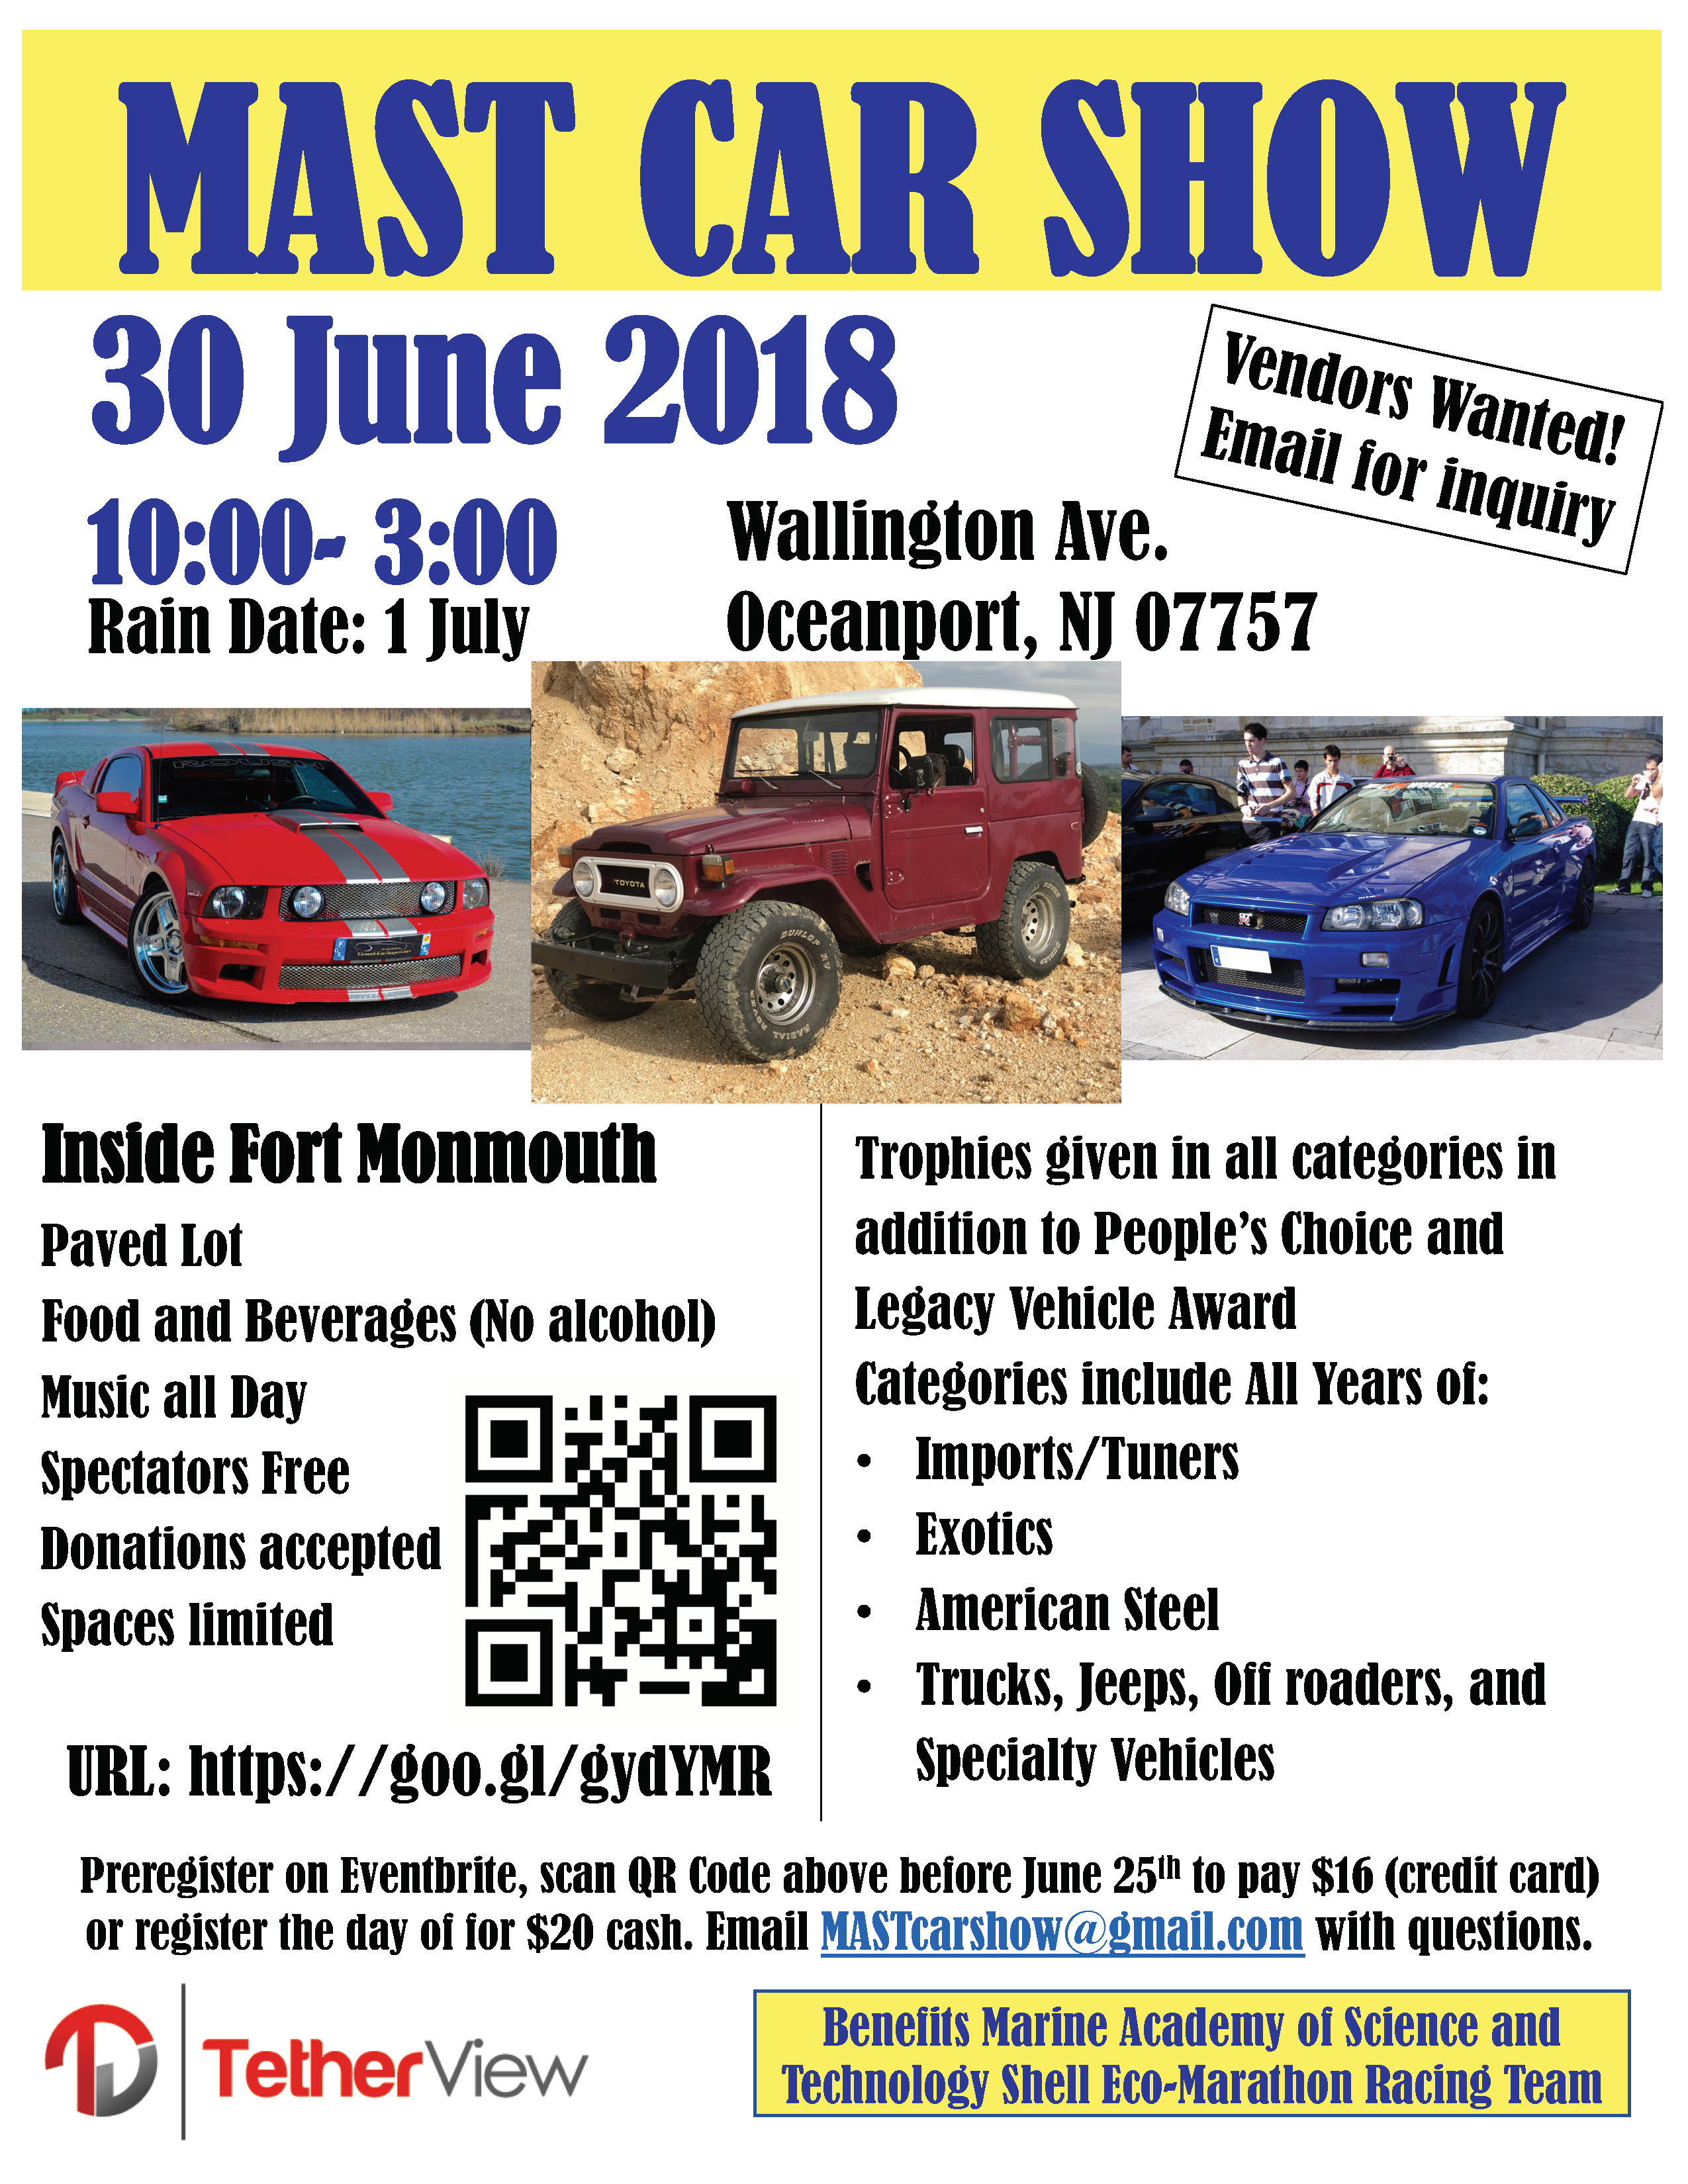 MAST Car Show Flyer Fort Monmouth - Car show trophy categories